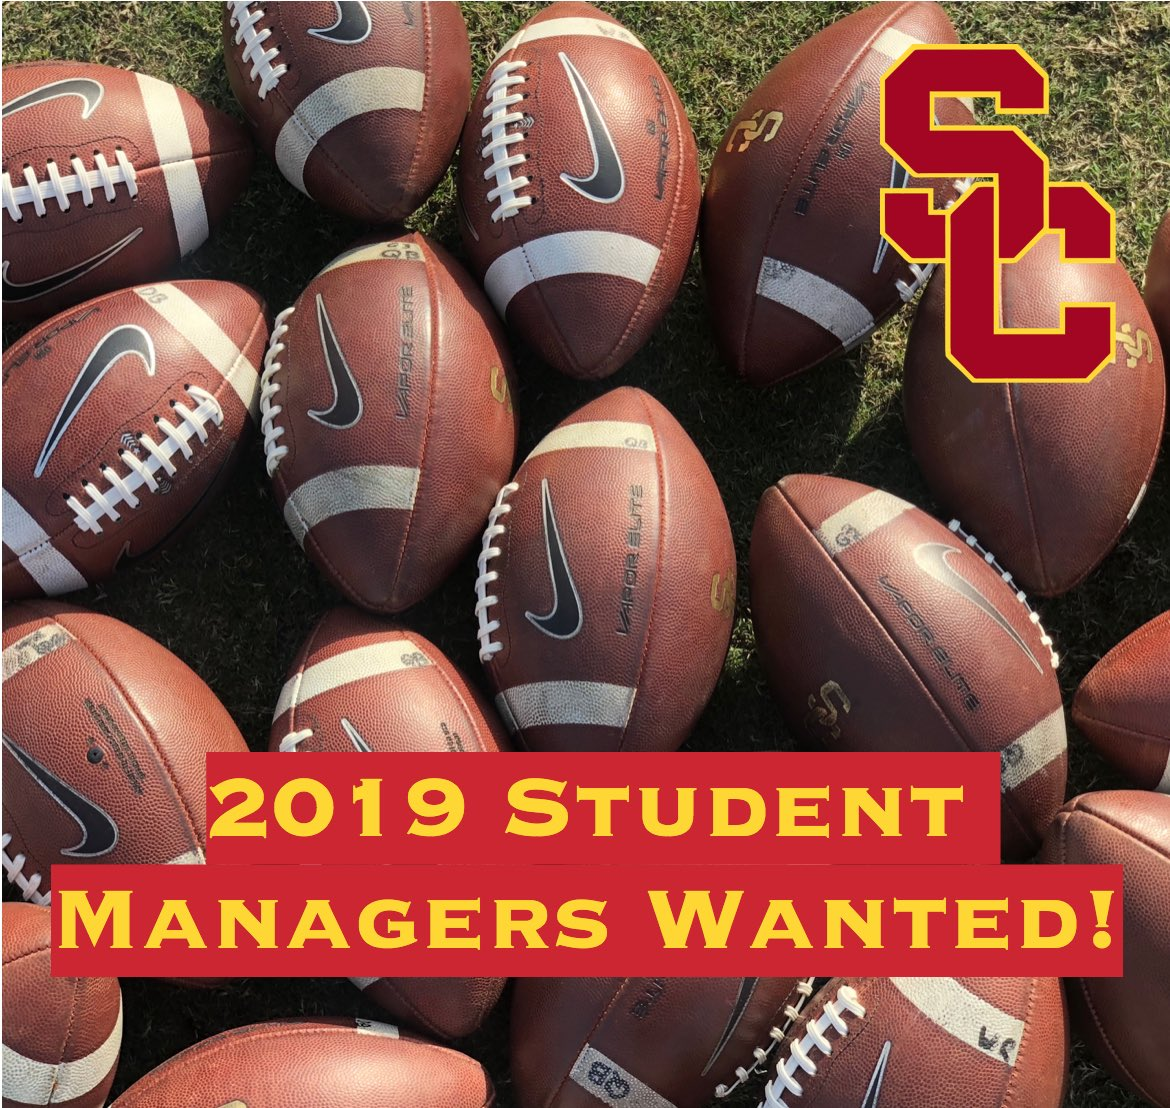 f176bbf9321e You must be a full-time student at USC. For more information